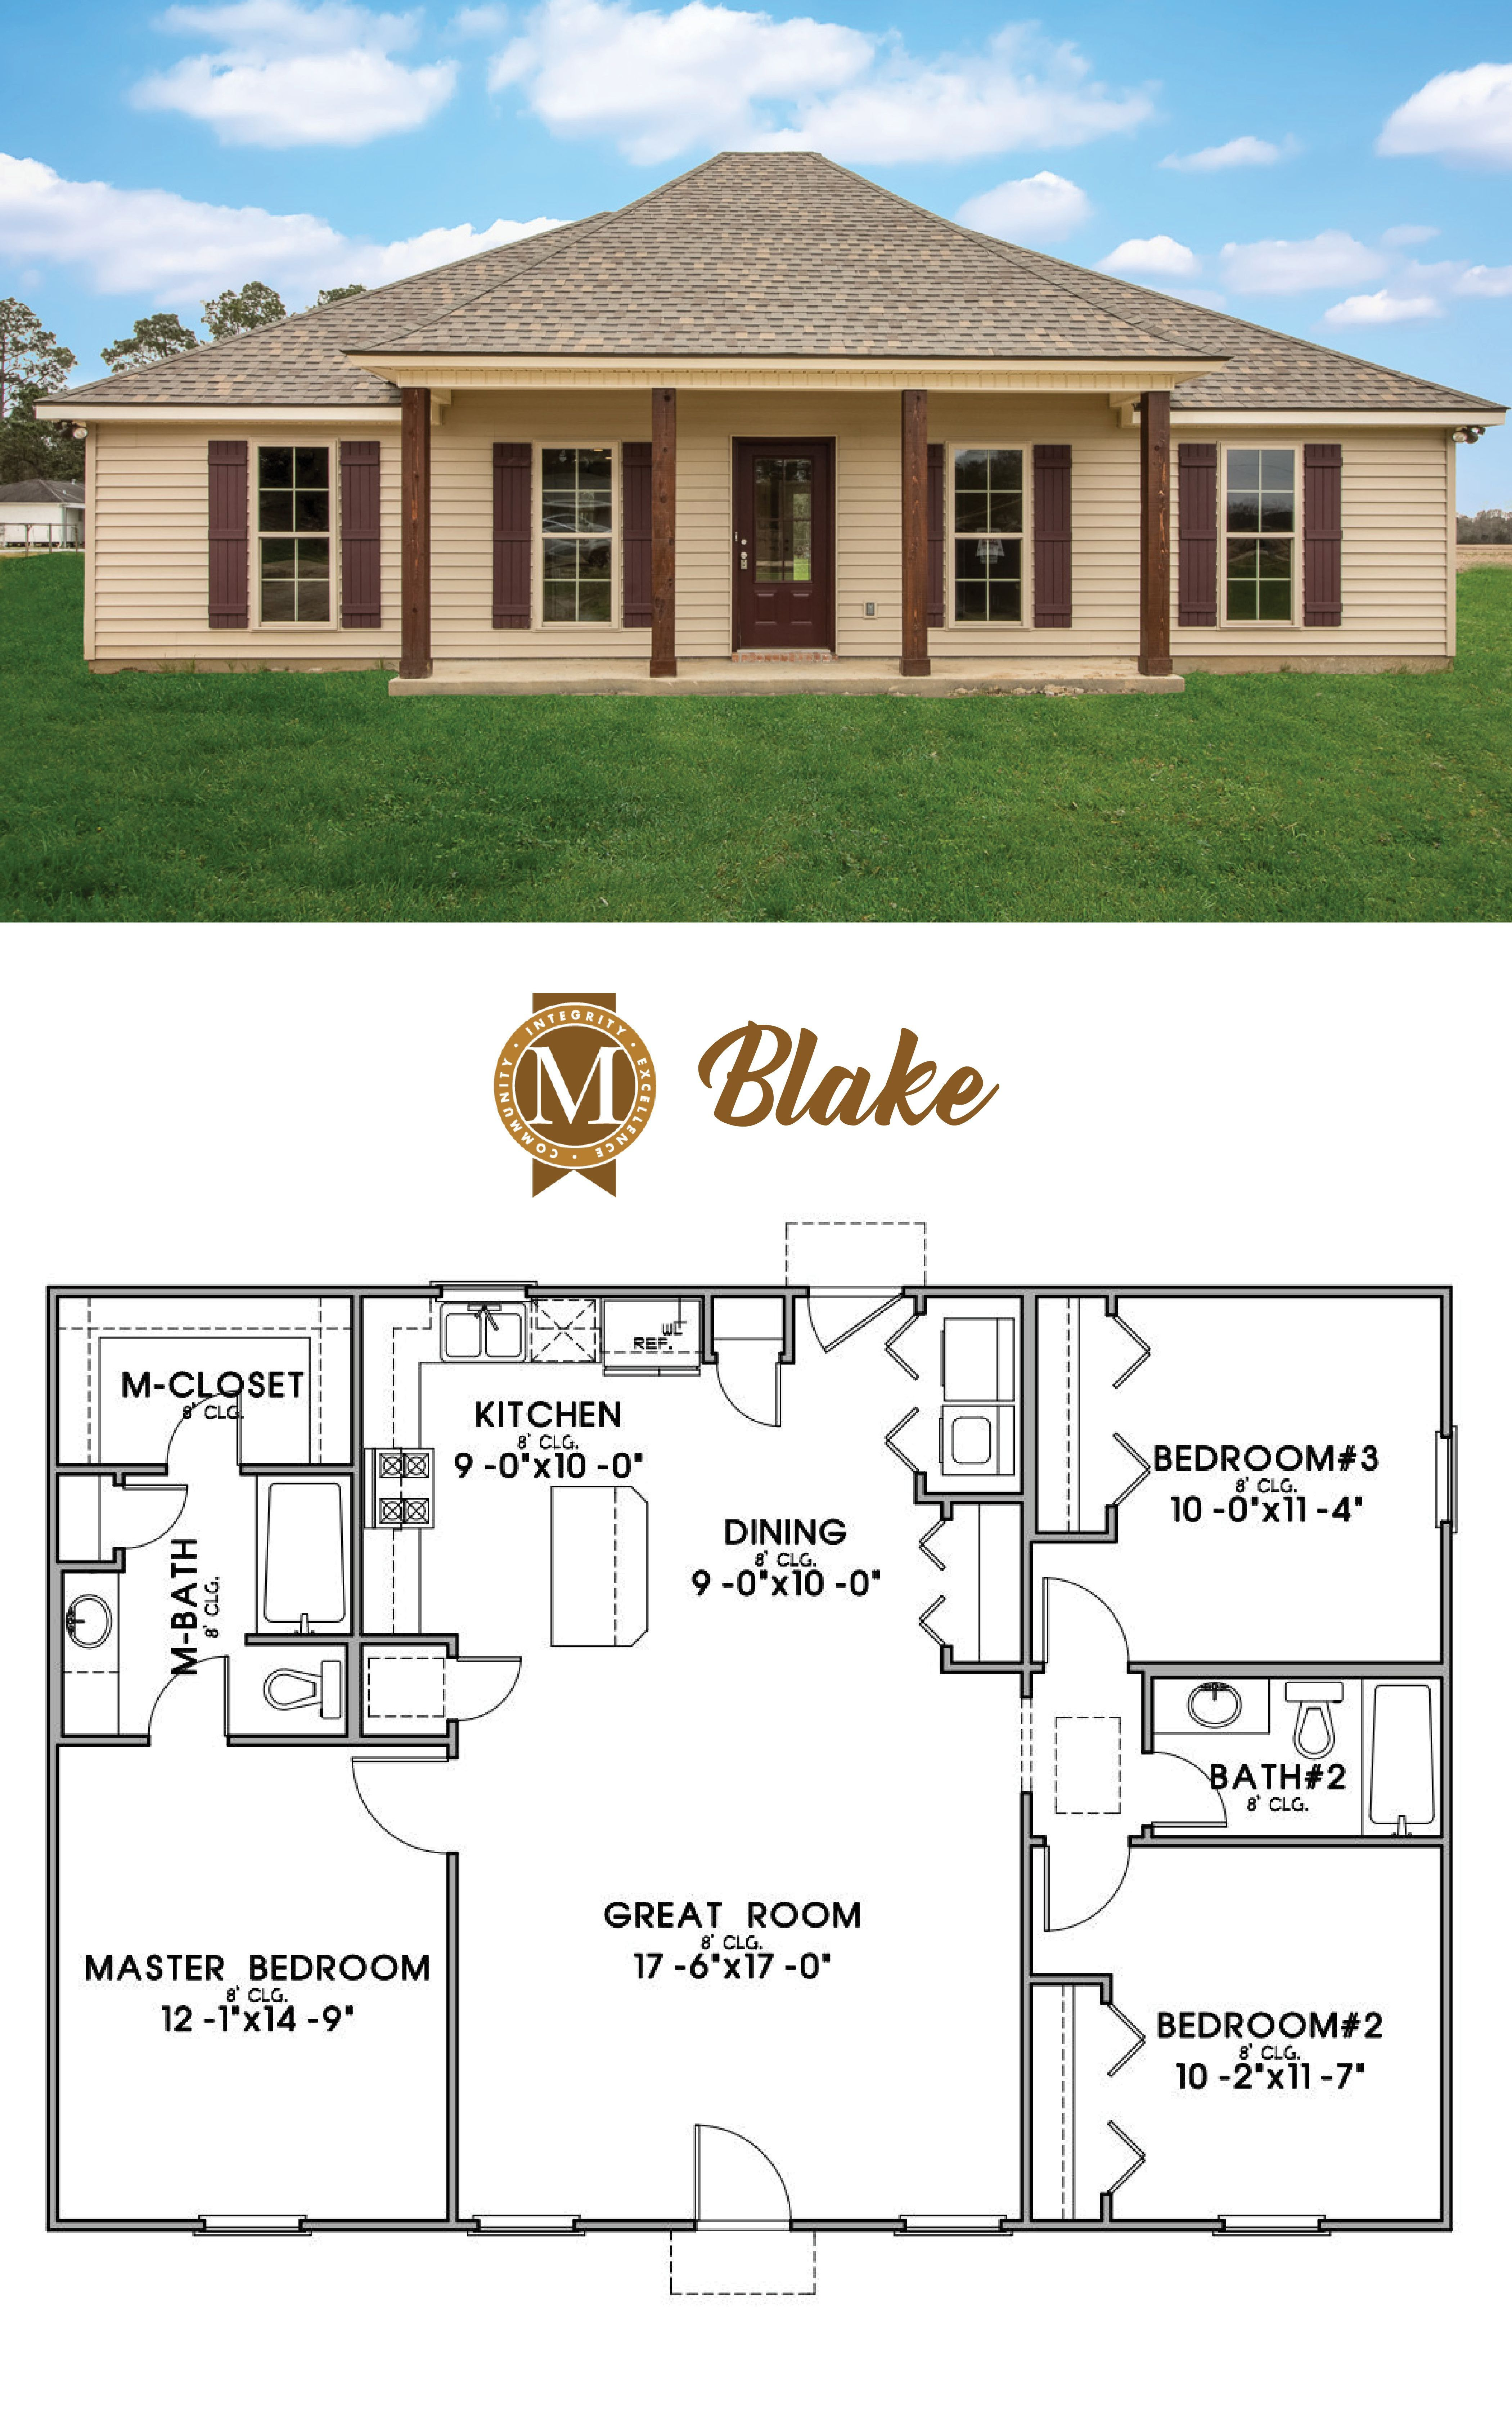 House Plans In Baton Rouge 2020 Simple House Plans Simple House Dream House Plans